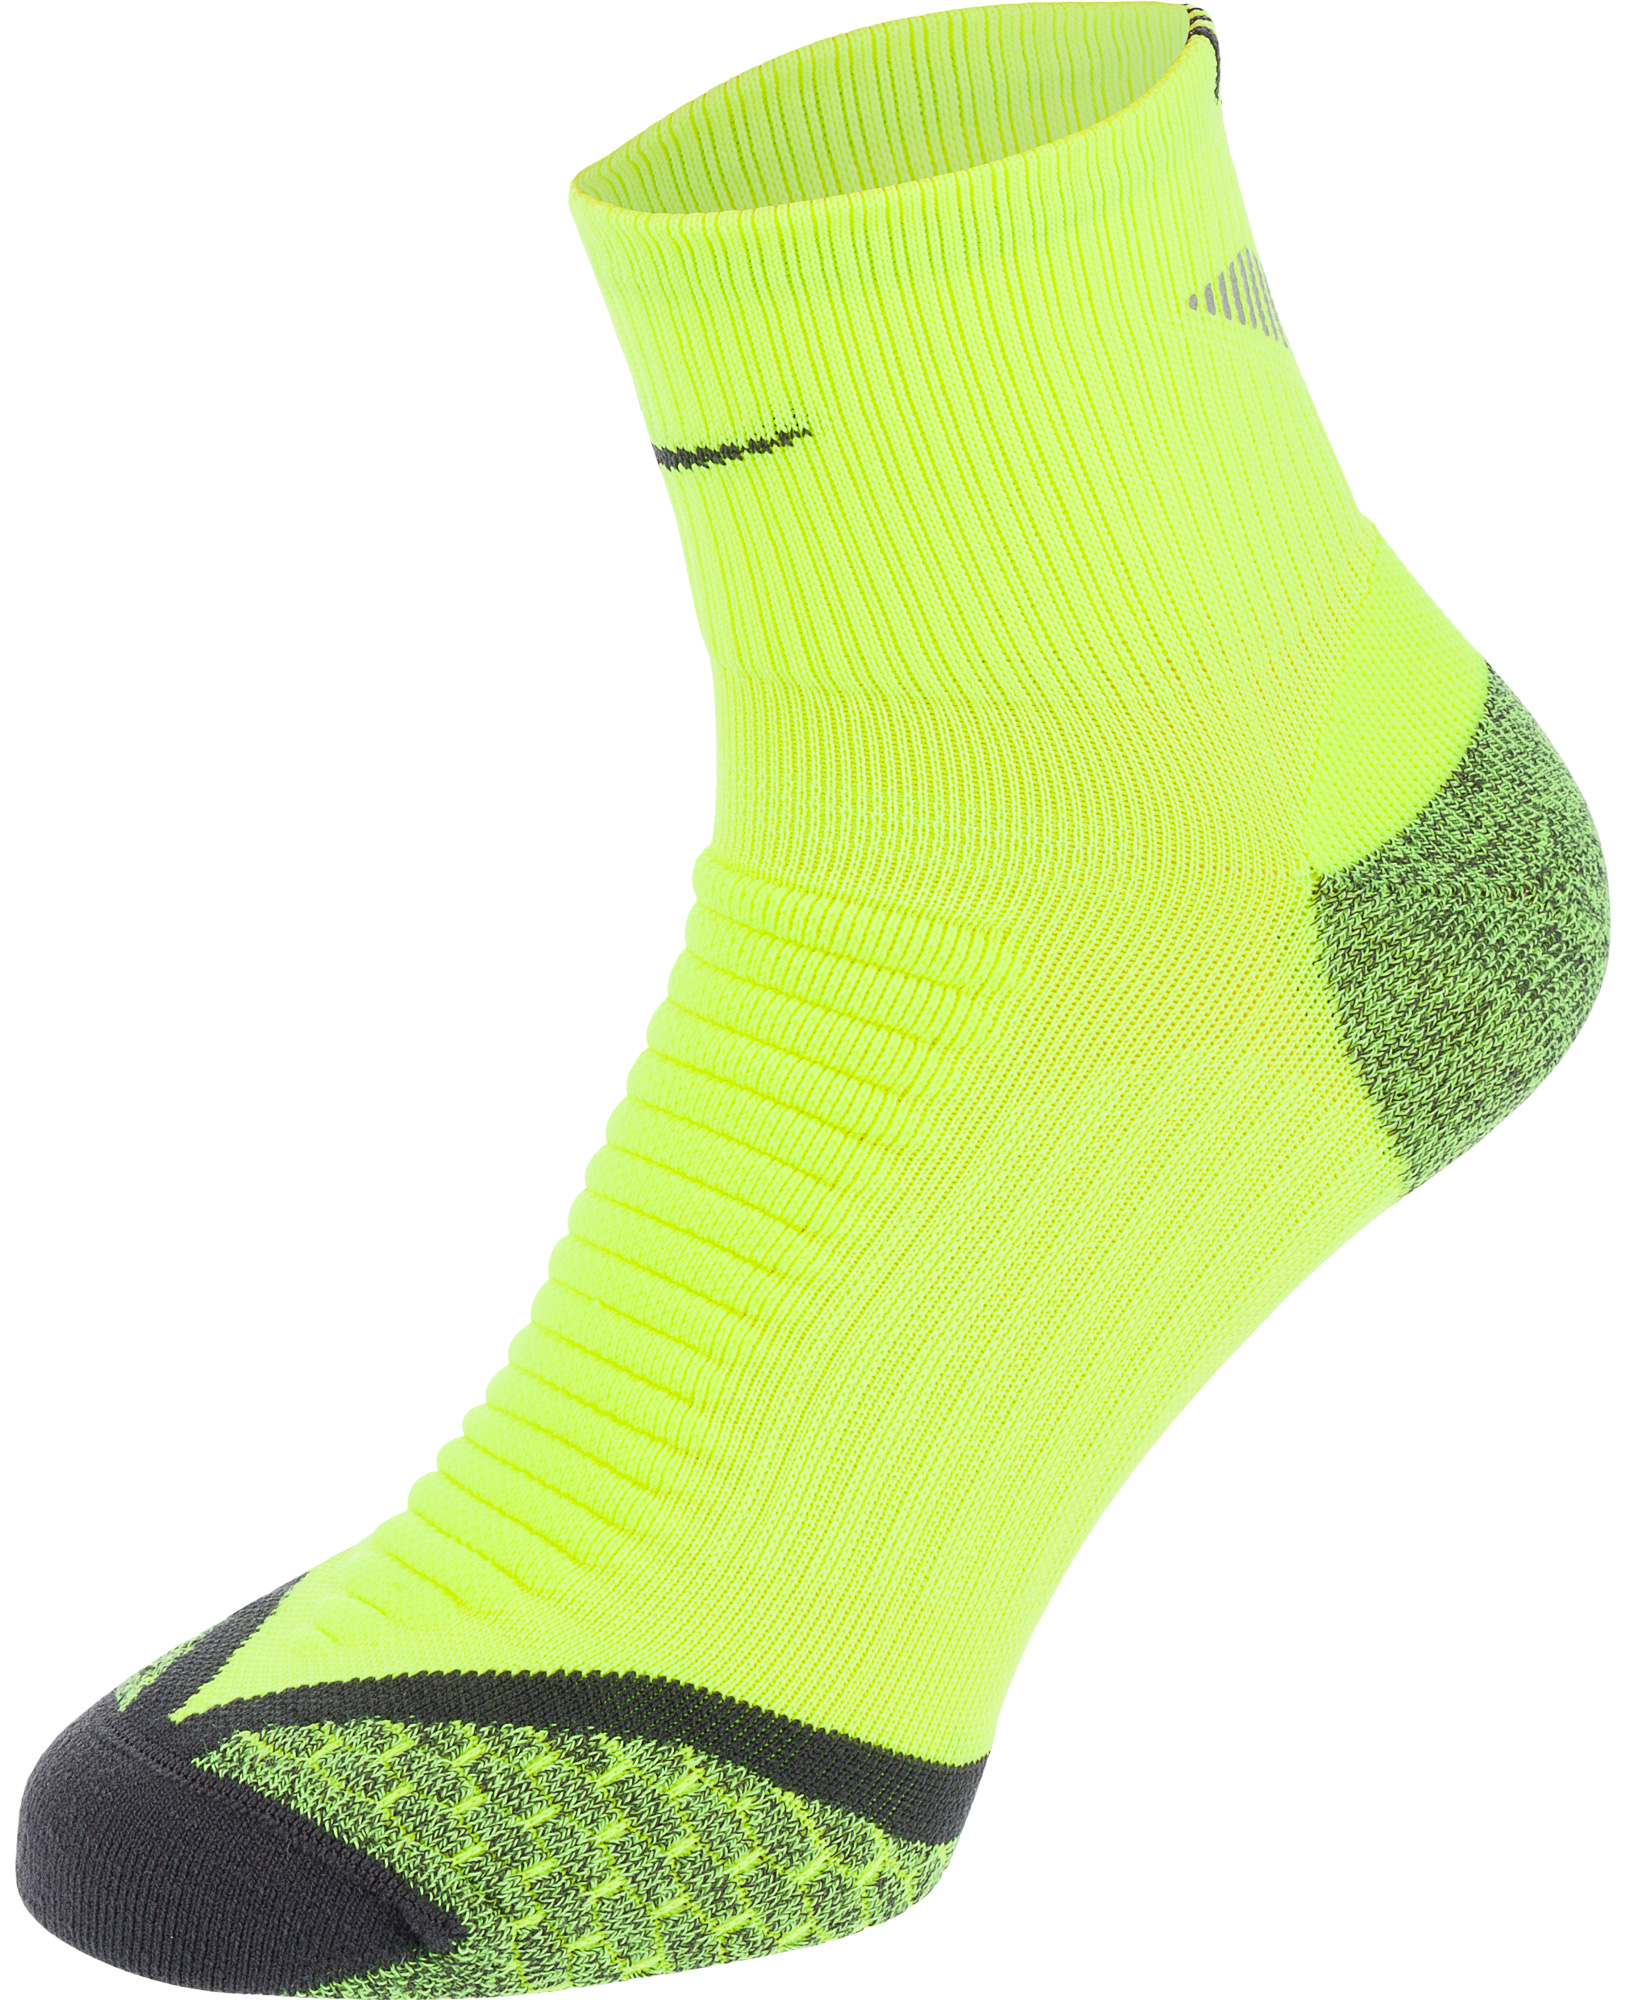 Nike Носки Nike Elite Cushion Quarter, 1 пара чулок д щитков nike guard lock elite sleeve su12 se0173 011 m чёрный